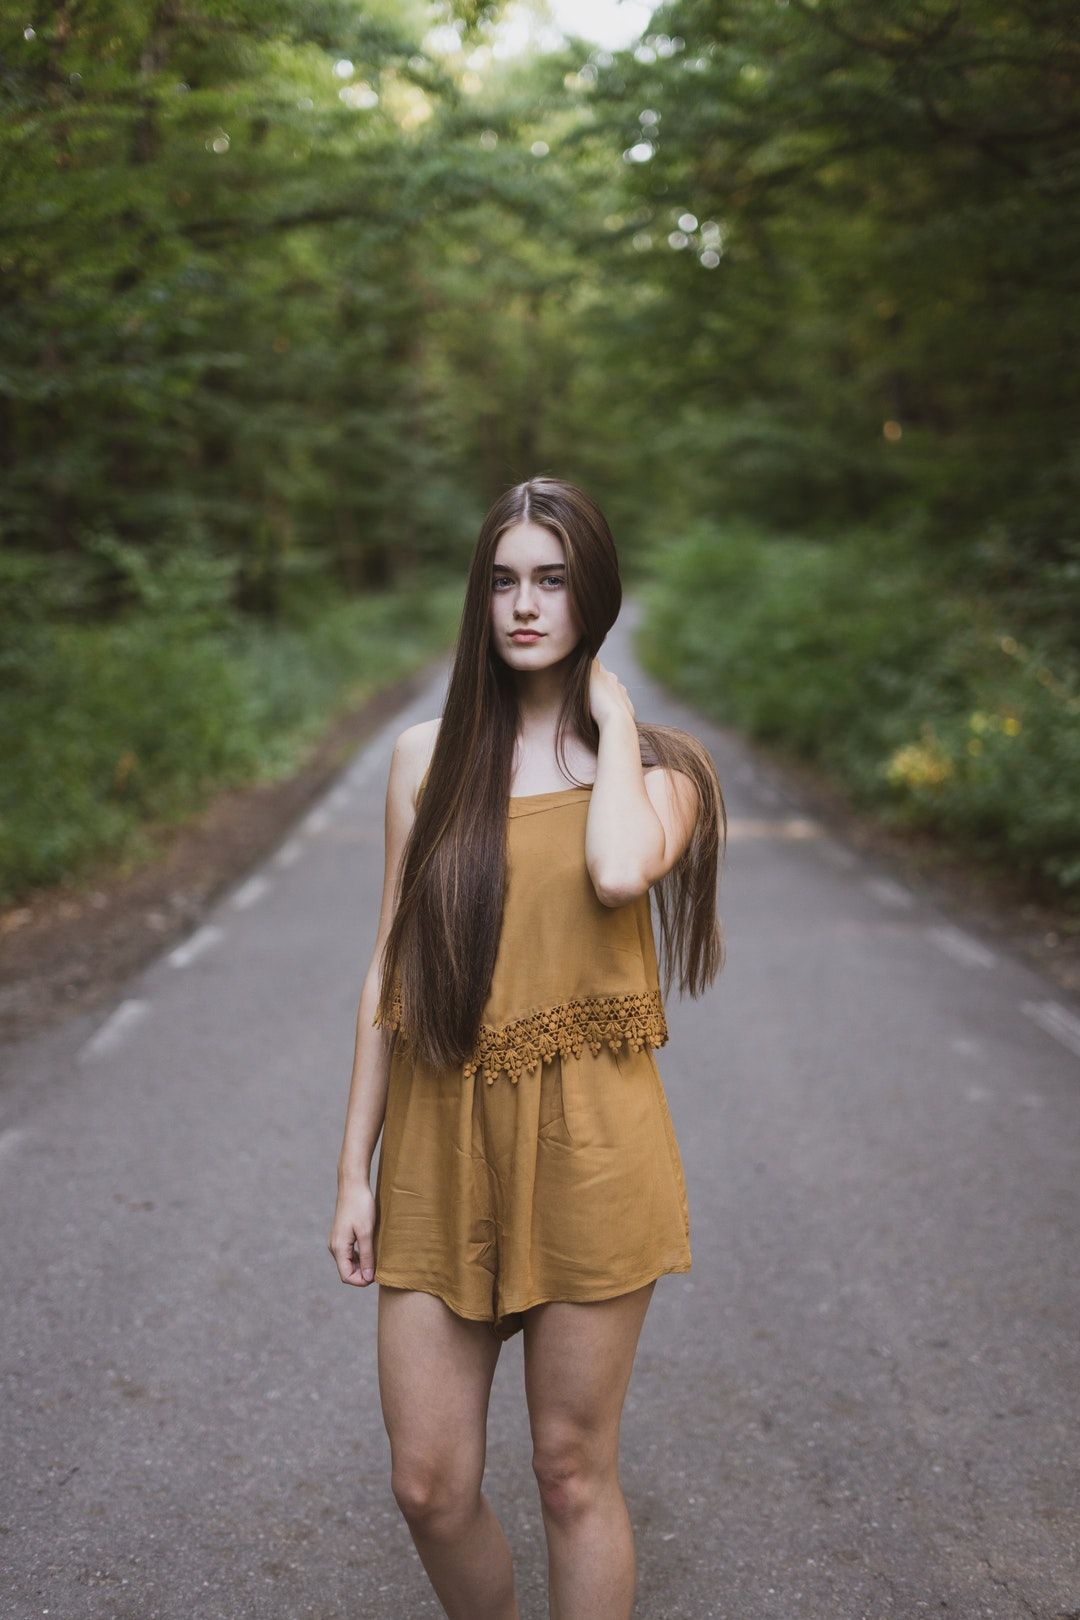 Woman with long hair in a yellow dress in the middle of a country road